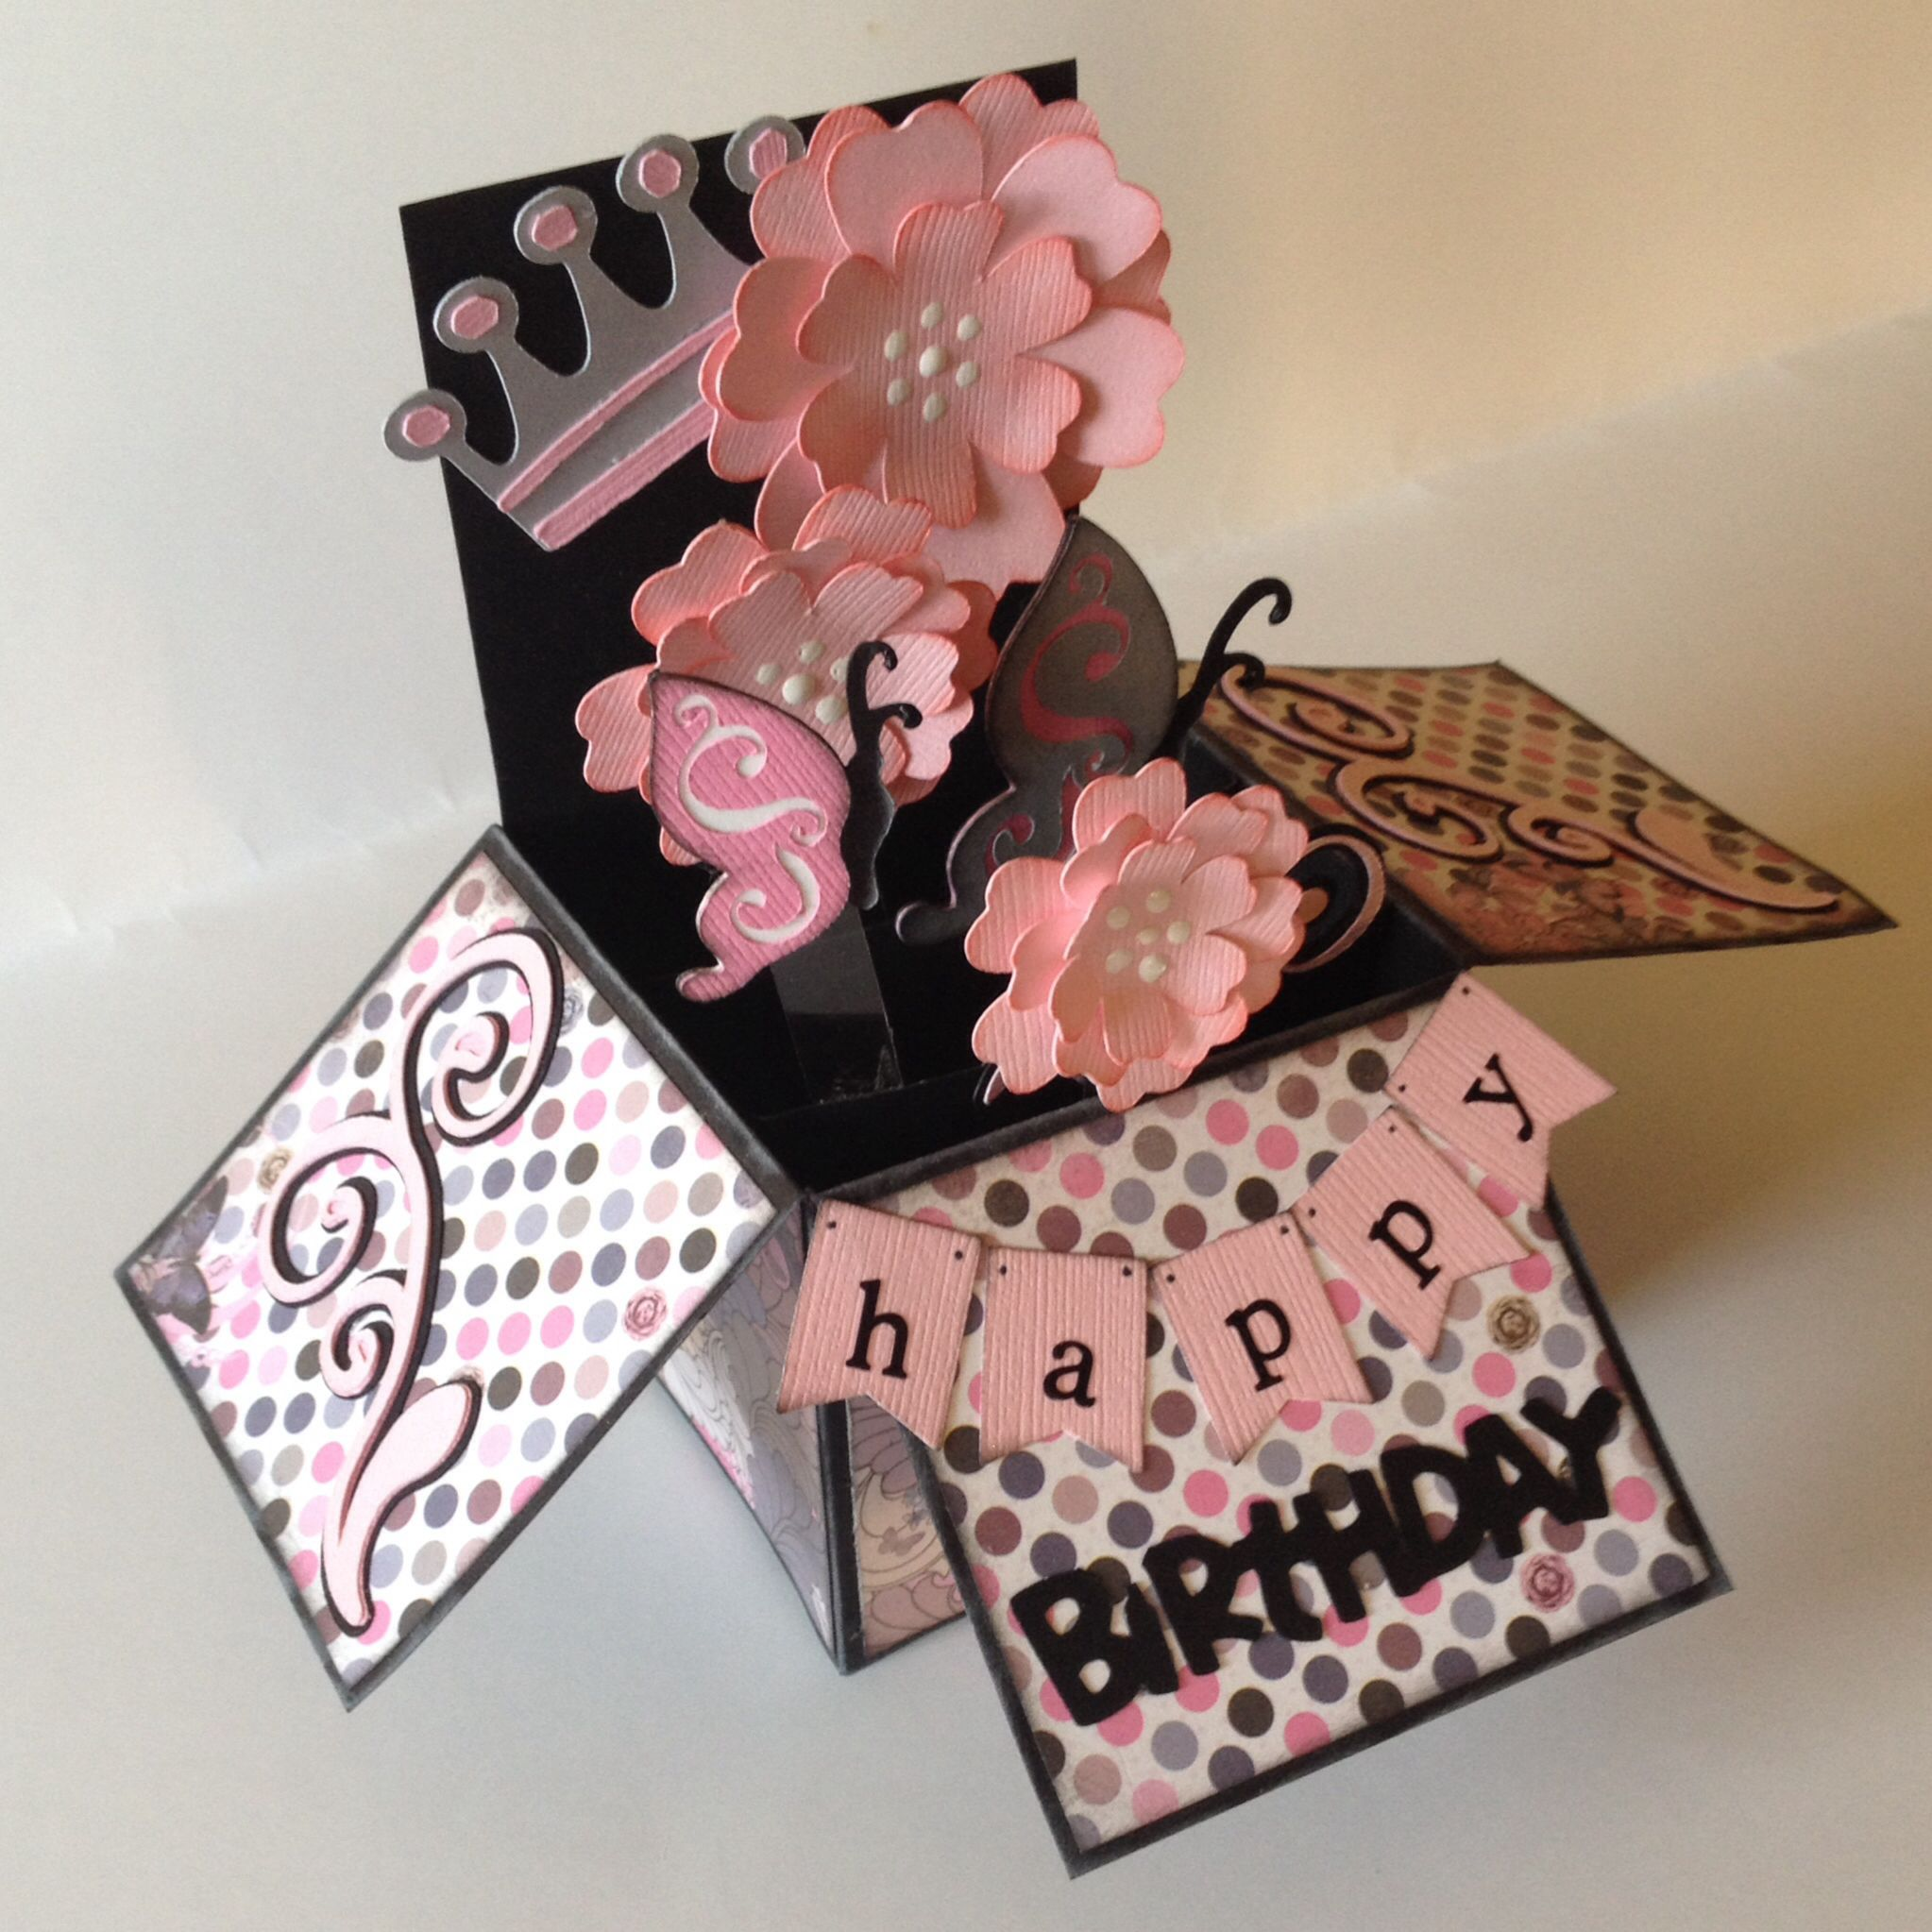 Happy birthday pop up box card Card in a Box Pinterest